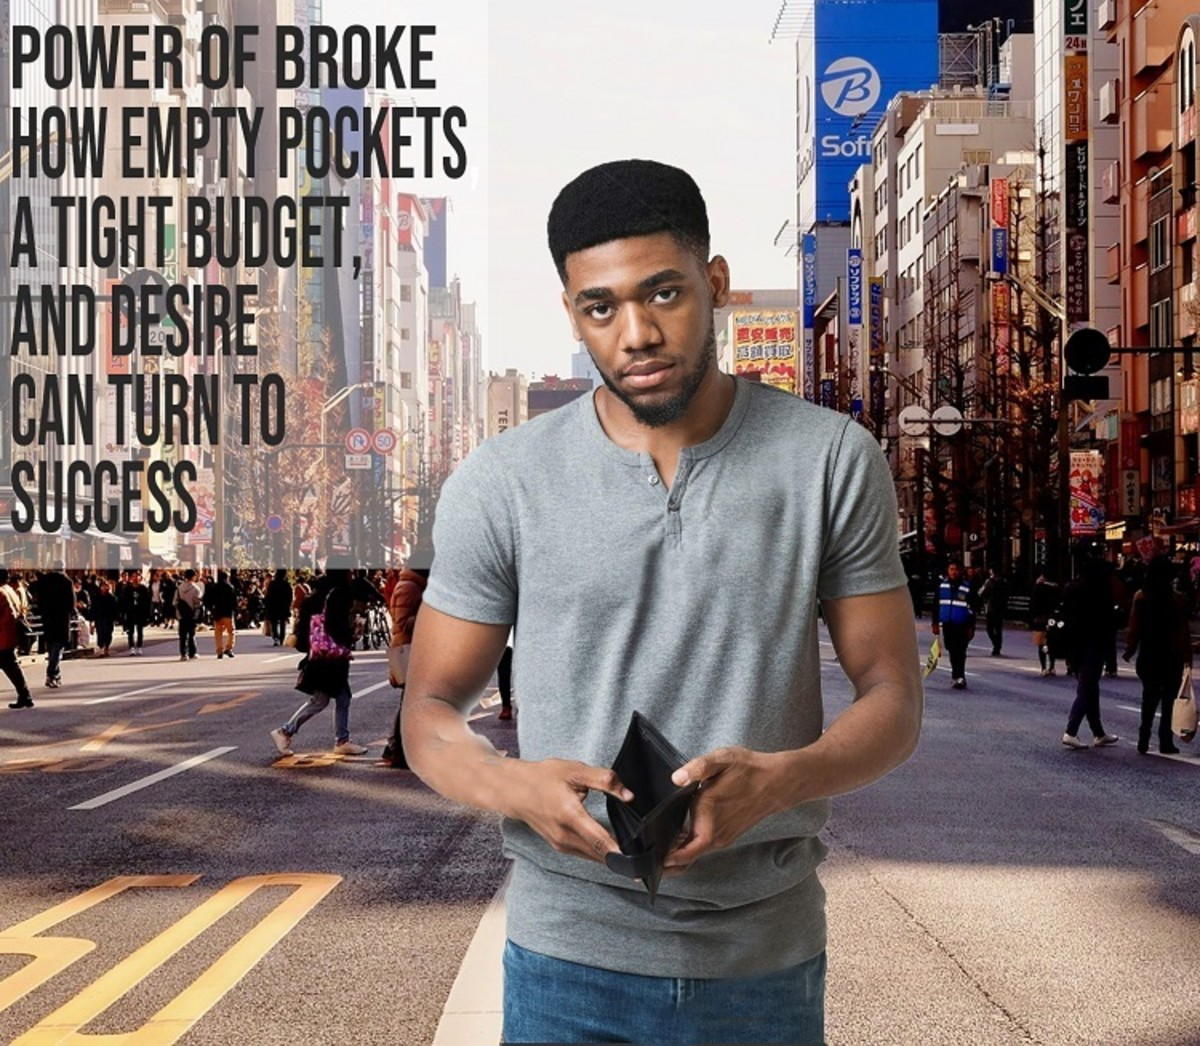 The Power of Broke: How Empty Pockets, a Tight Budget, and Desire Can Turn to Success